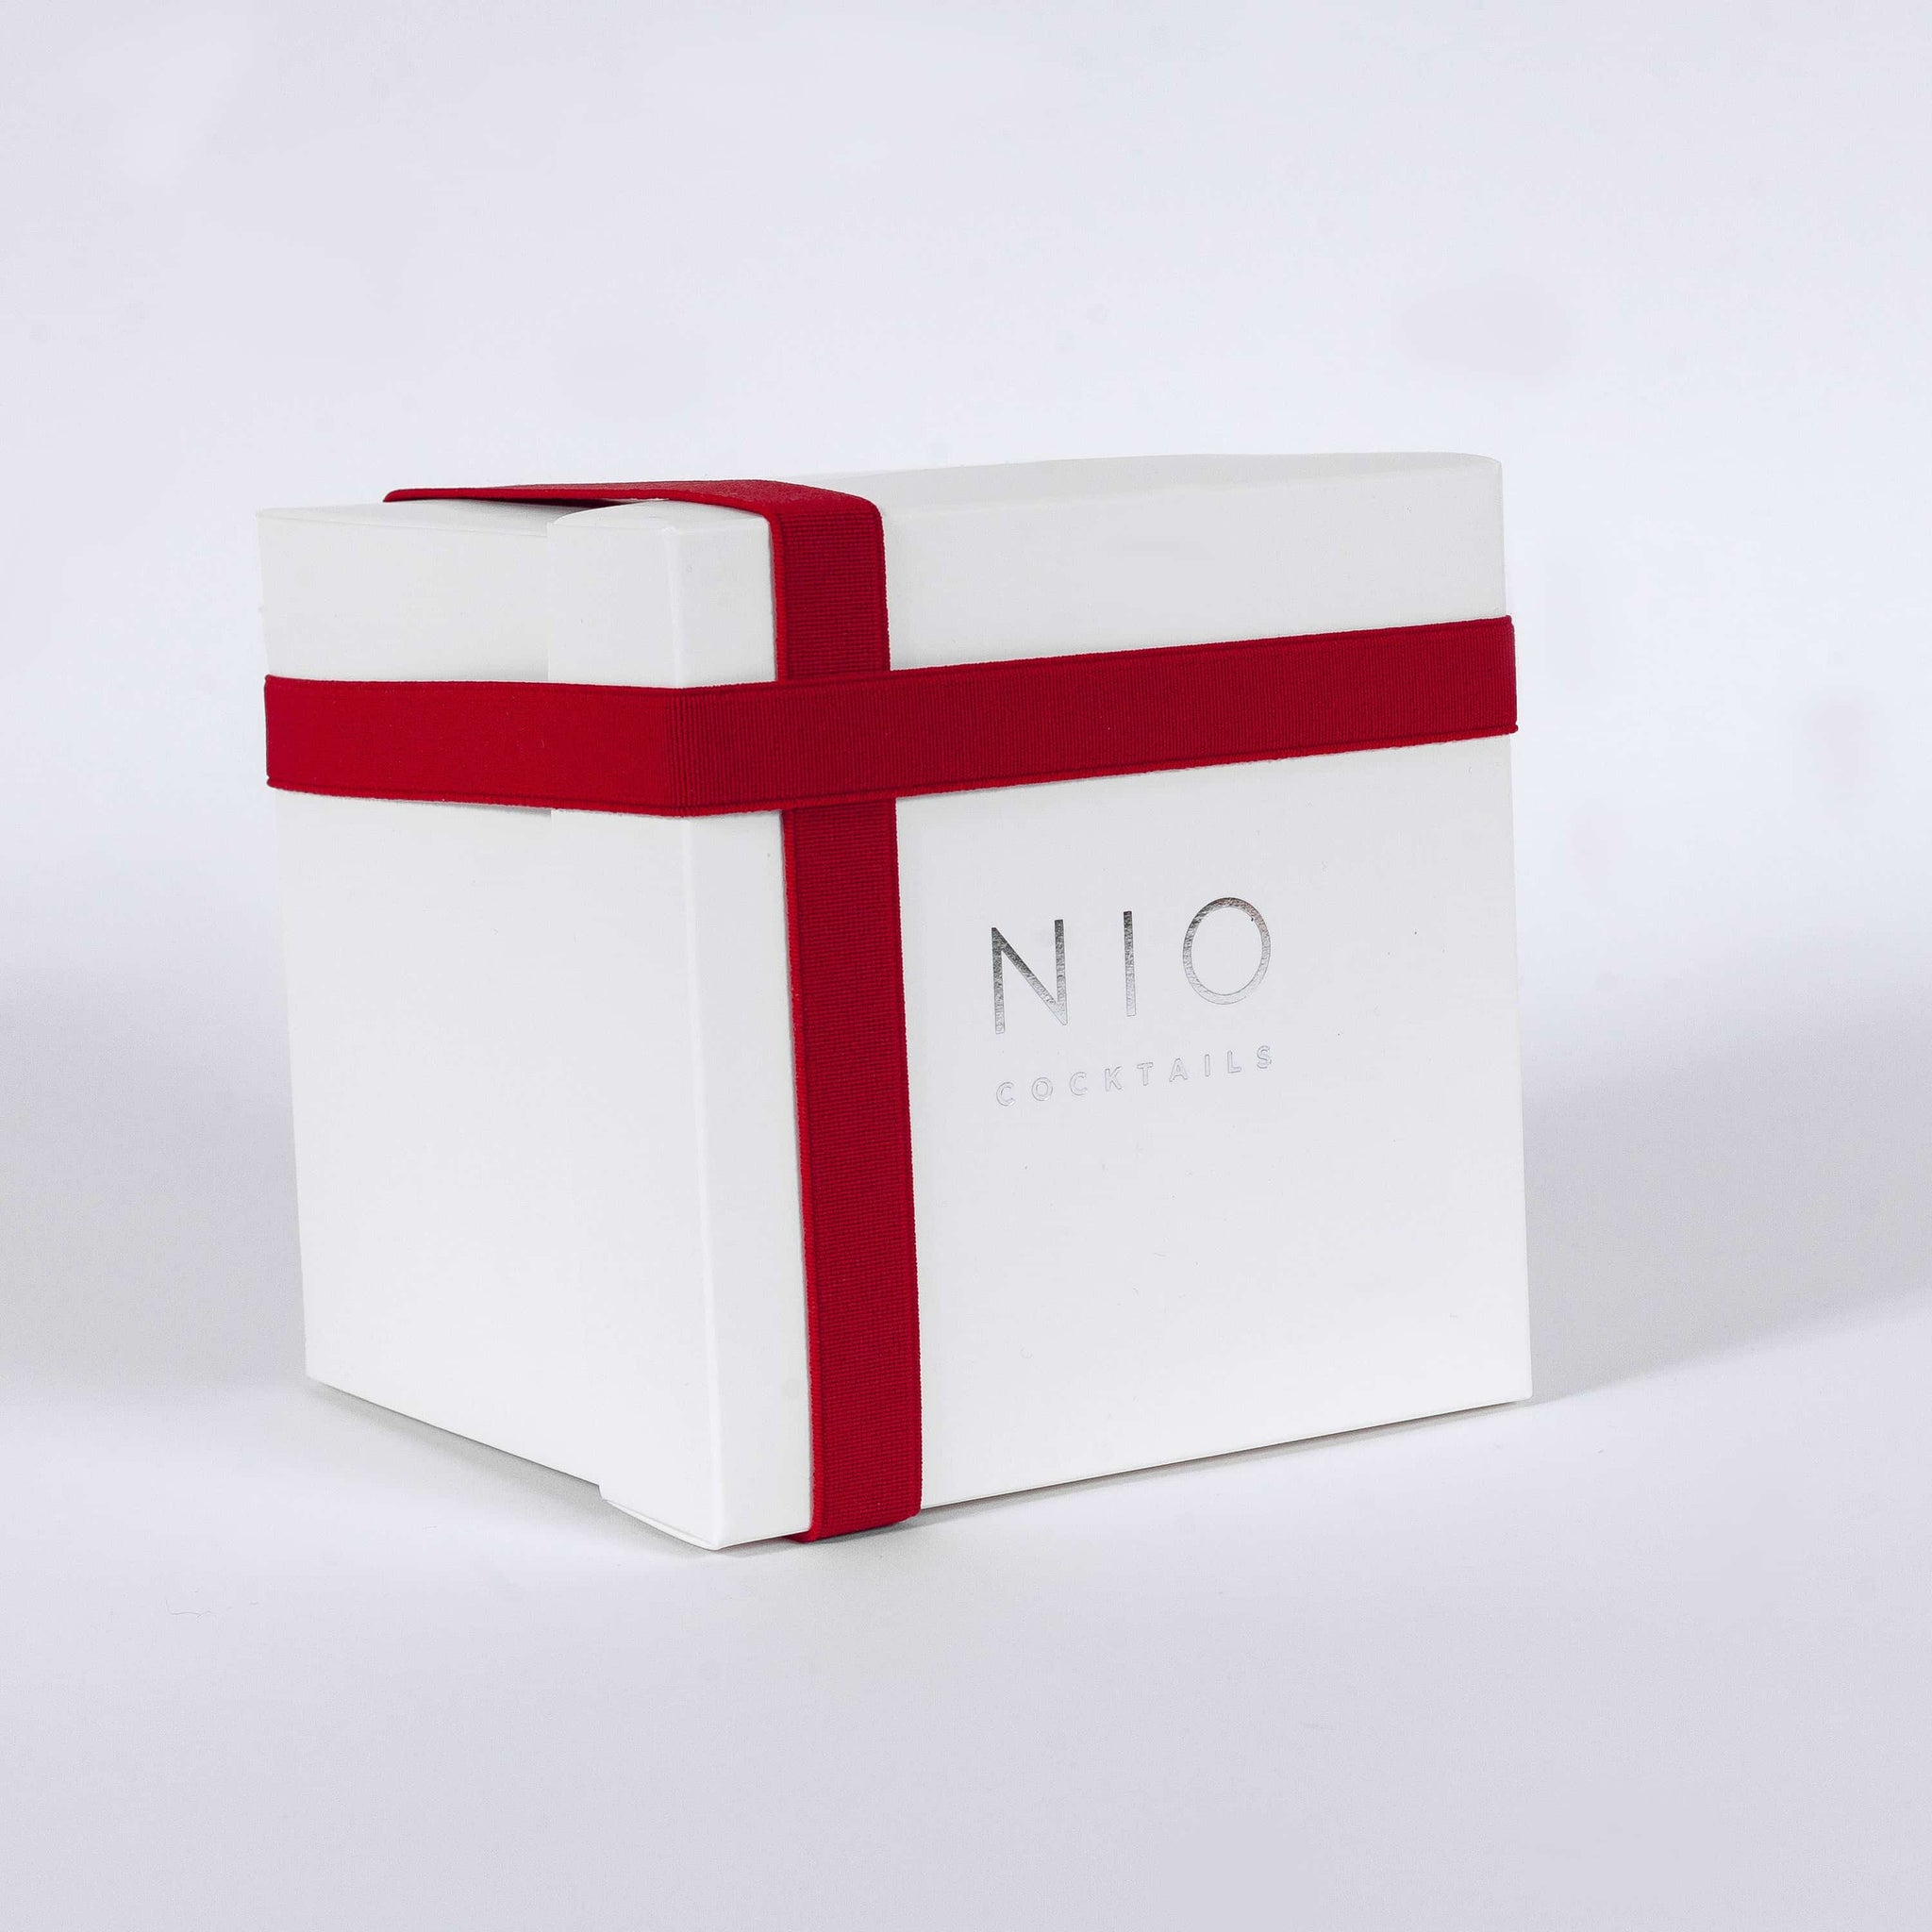 NIO_Cocktails_gift_box_regalo